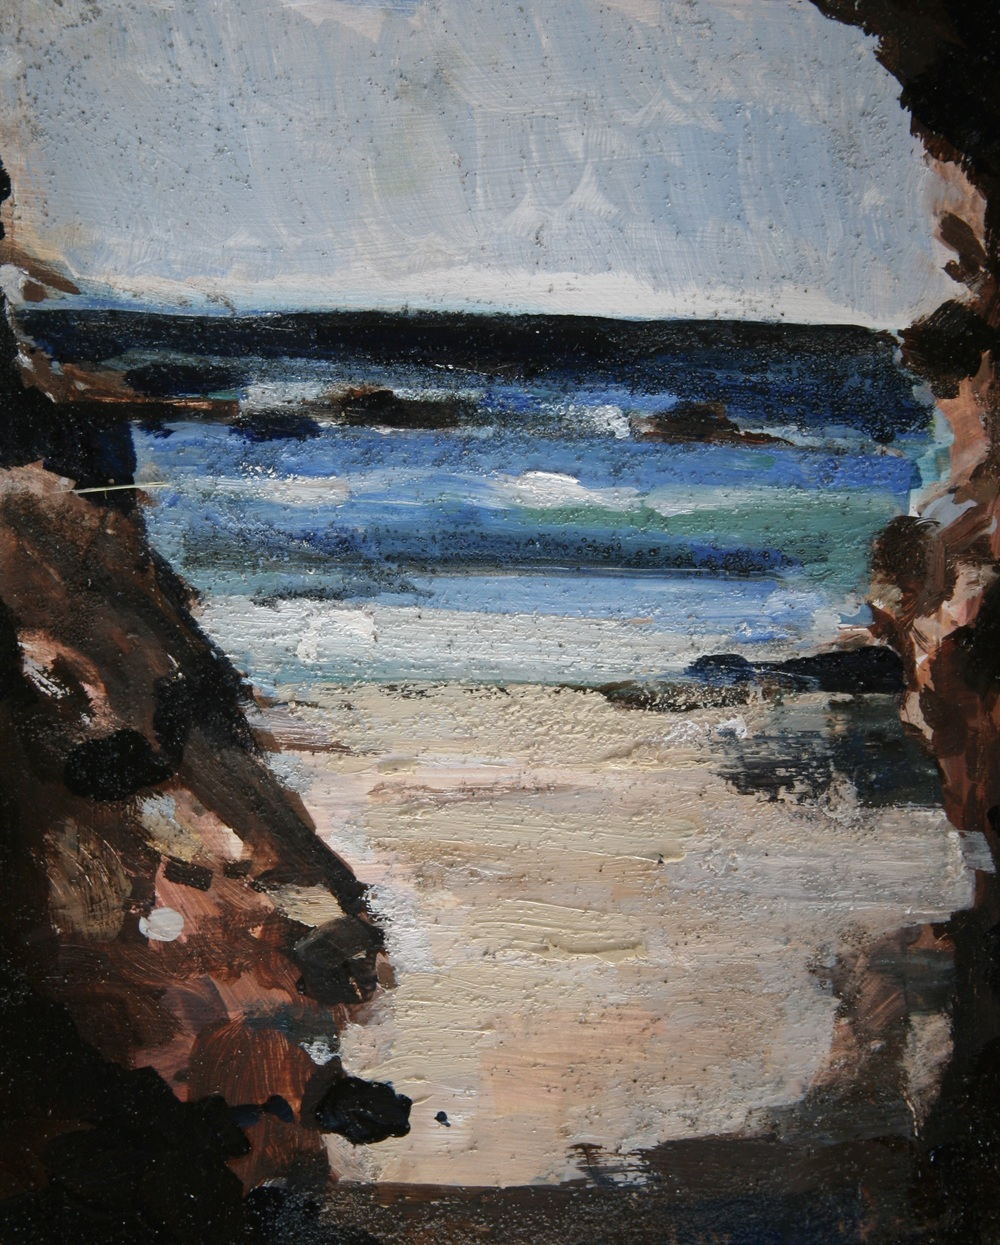 "From a Cave in Brito; The Exact Place where the Canal Will Begin,  Oil on board, 10"" x 8""   Sold  While I was painting this, a swarm of bees attacked me.  I swam out into the waves—pallet, brushes and all in hand—to get away. The sand embedded in the paint here is from leaving the easel while I tried to drown the bees. A gust of wind came, and knocked the painting onto the beach.  The bees stung me all over."